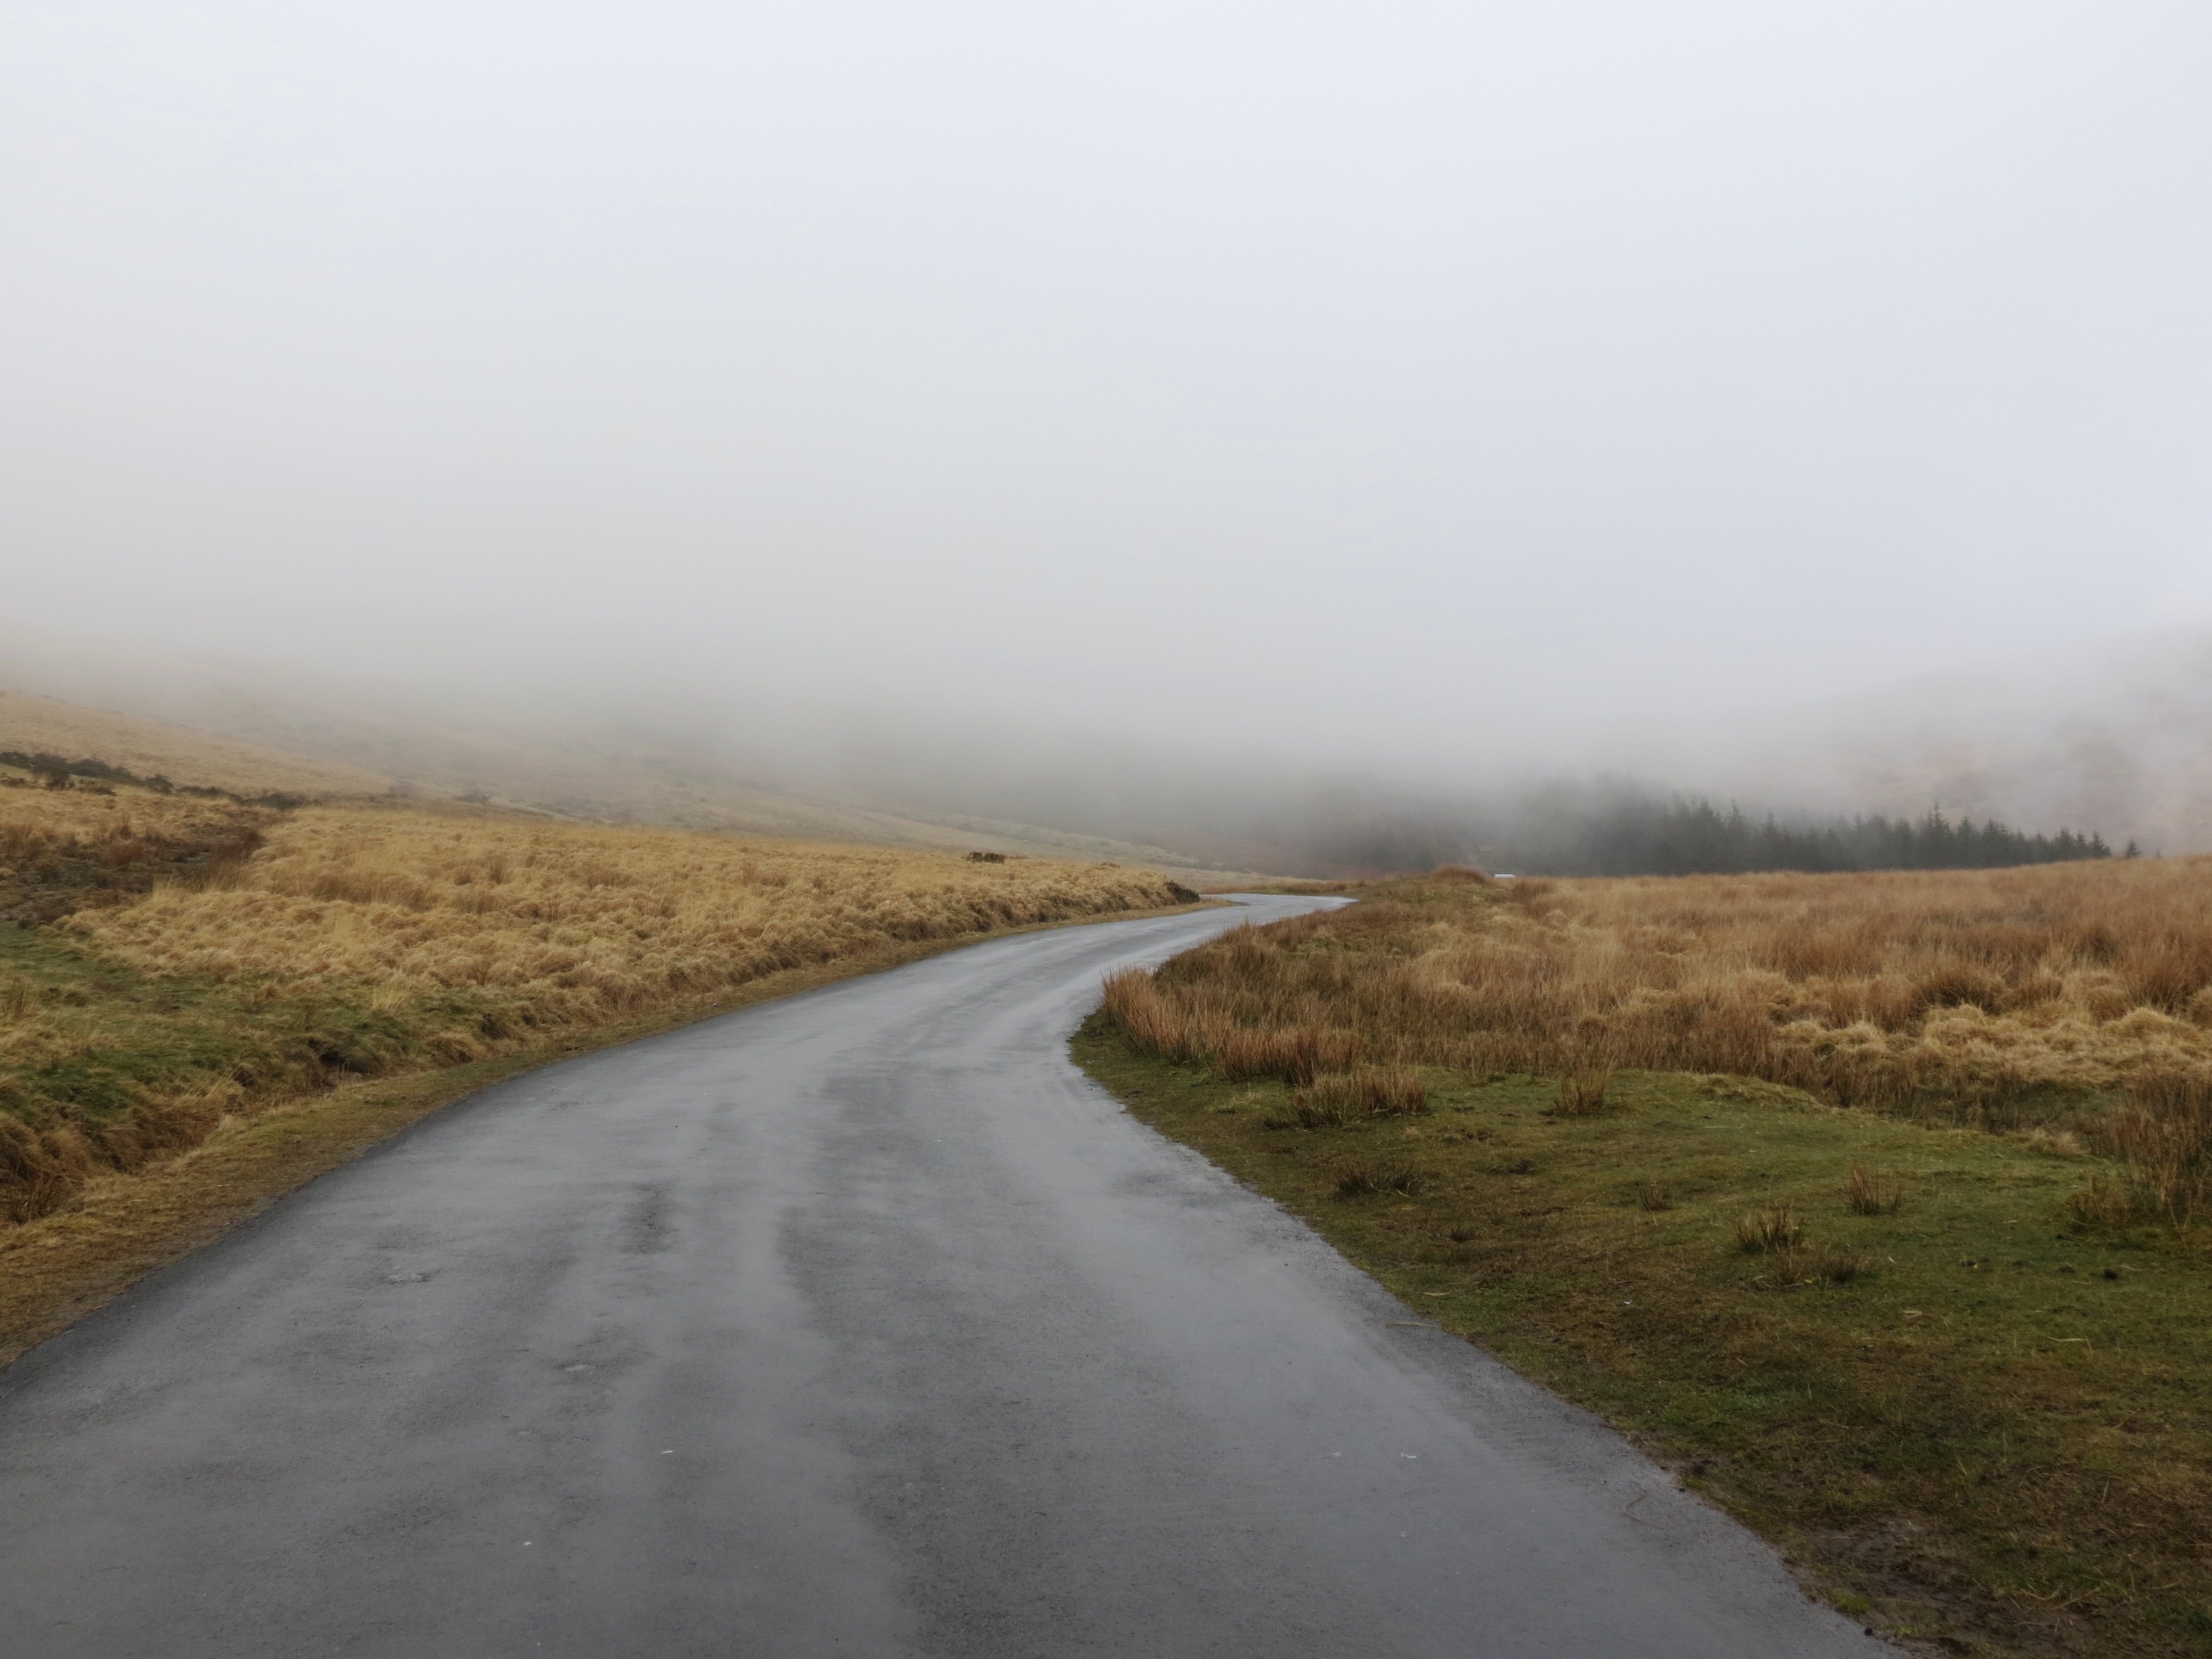 concrete road leading to misty forest